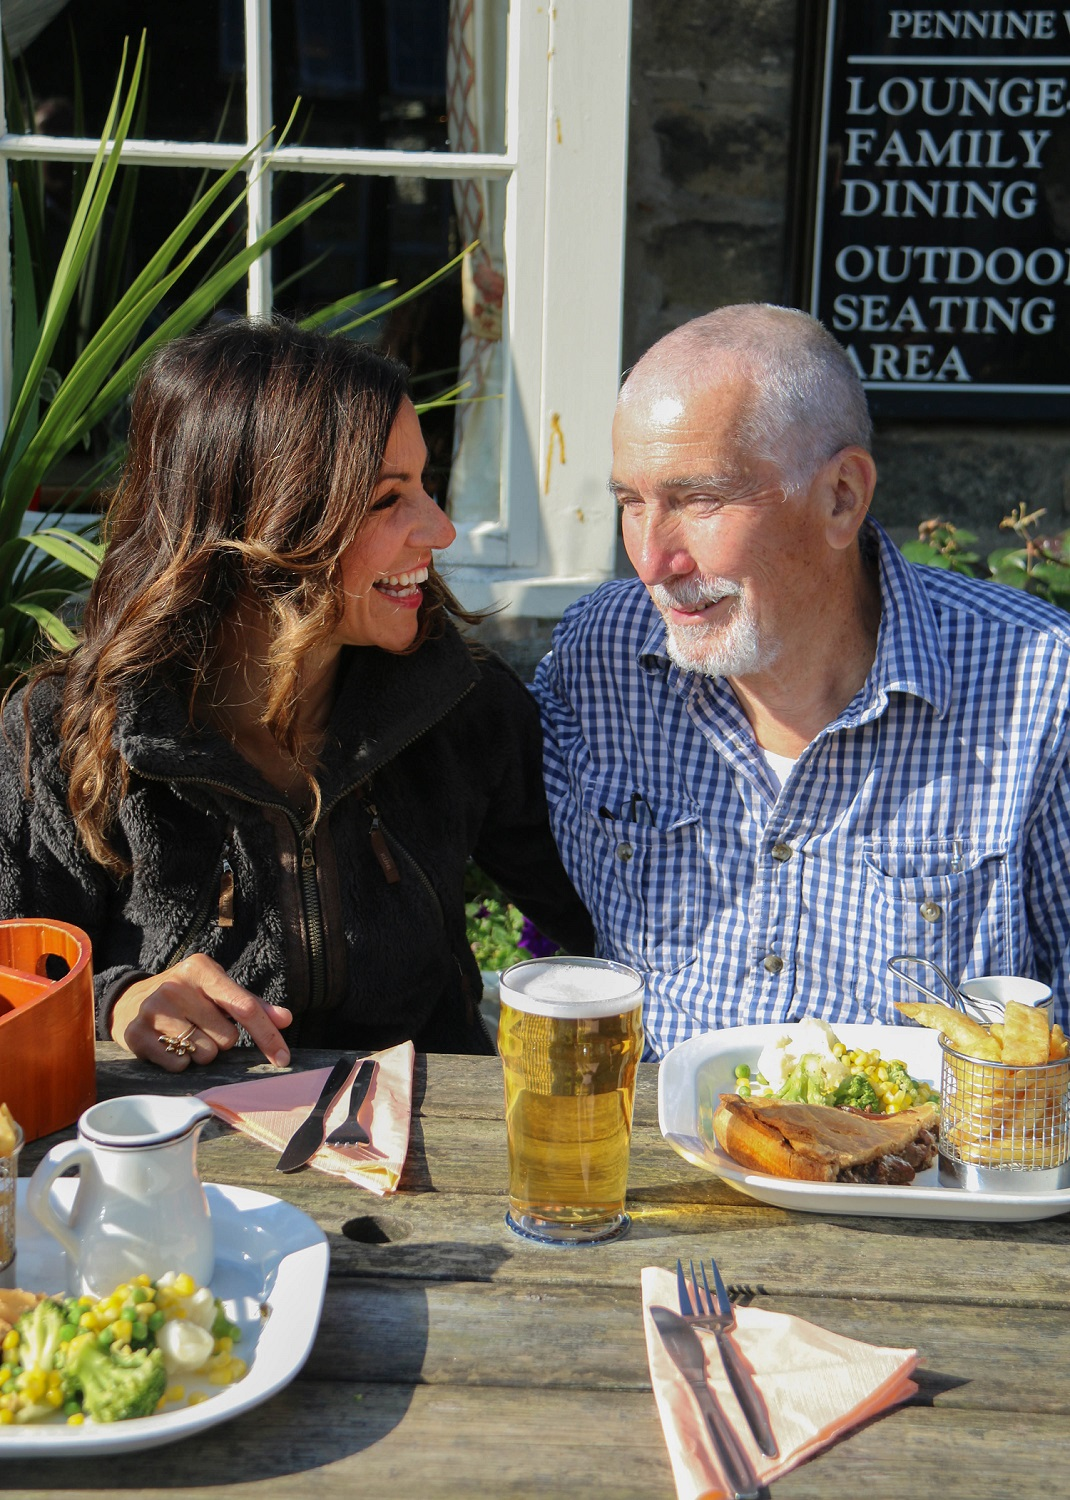 Julia Bradbury catches up with her dad Michael over a pub lunch in Edale